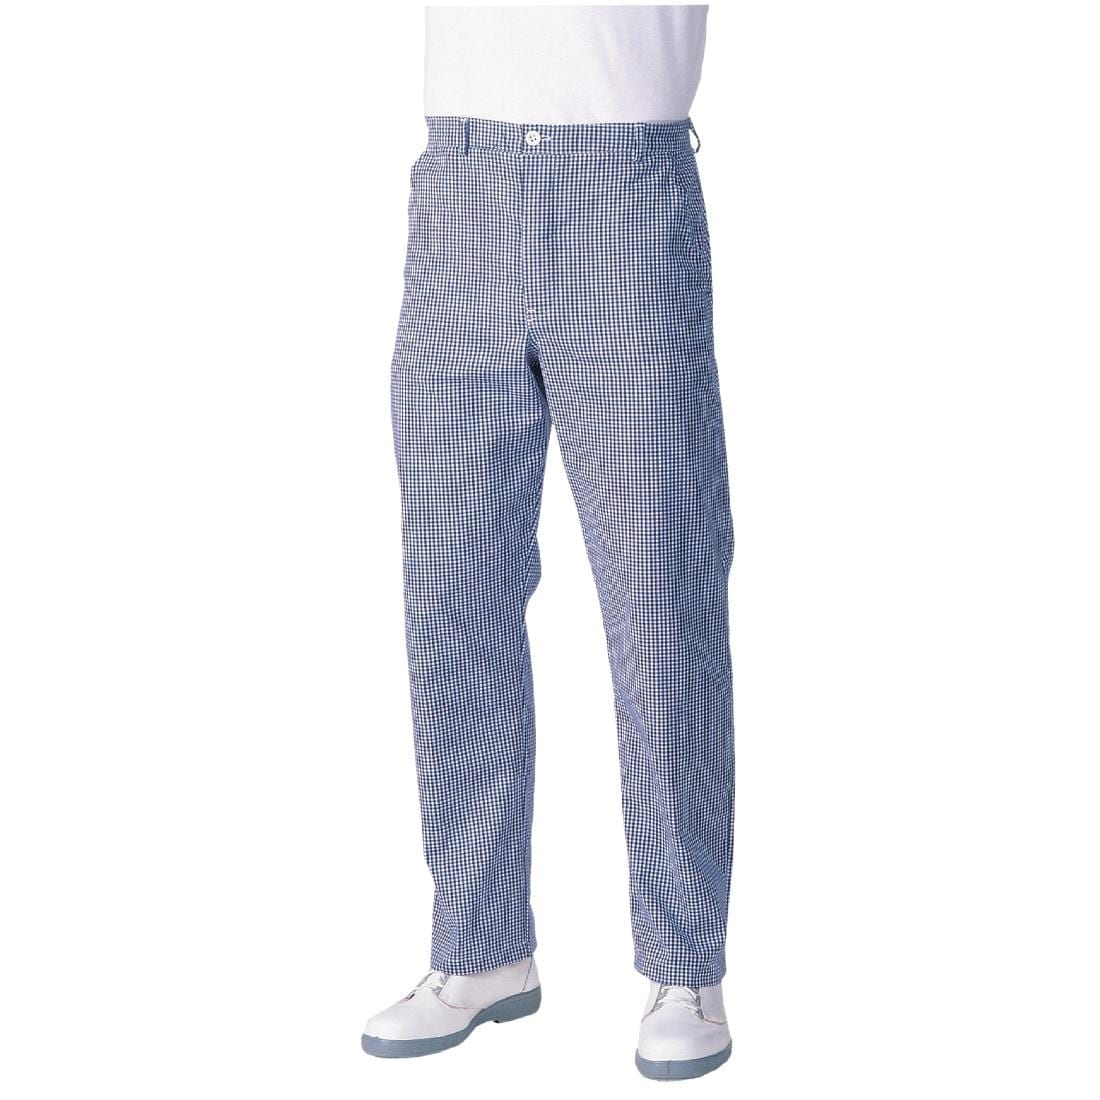 Whites Mens Chef Trousers Blue and White Check Extra Long 32in